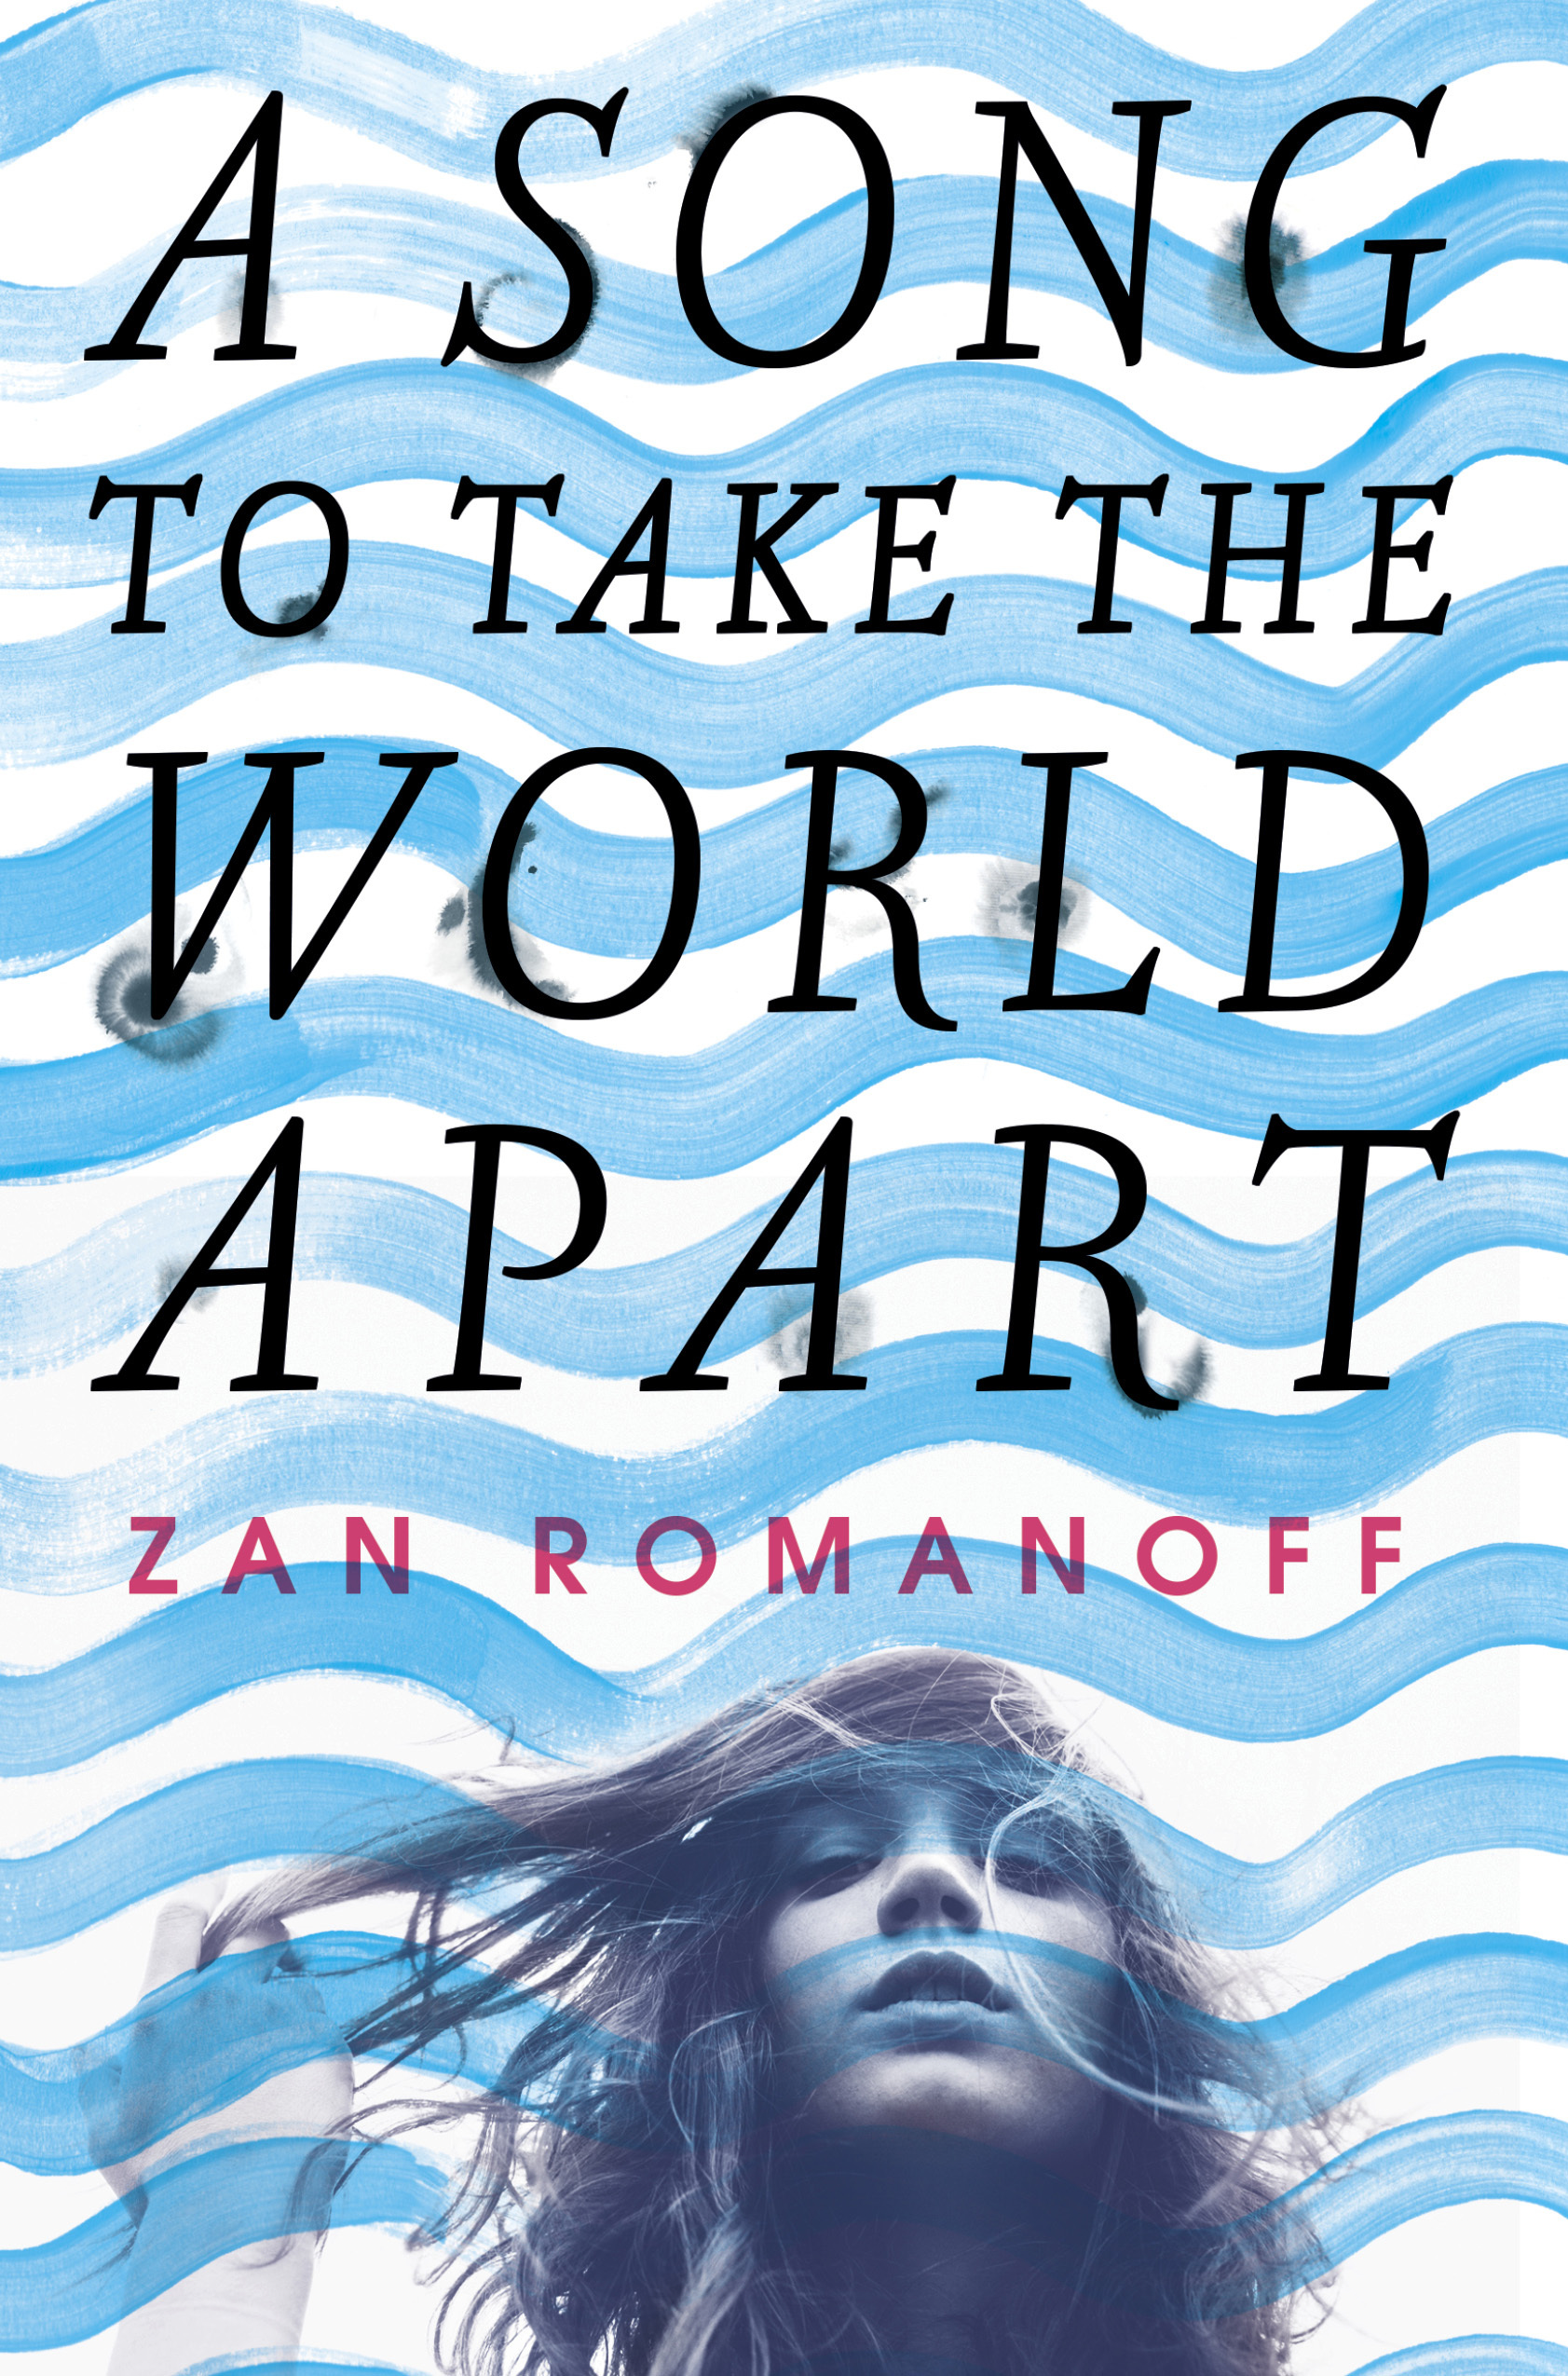 A Song to Take the World Apart Zan Romanoff